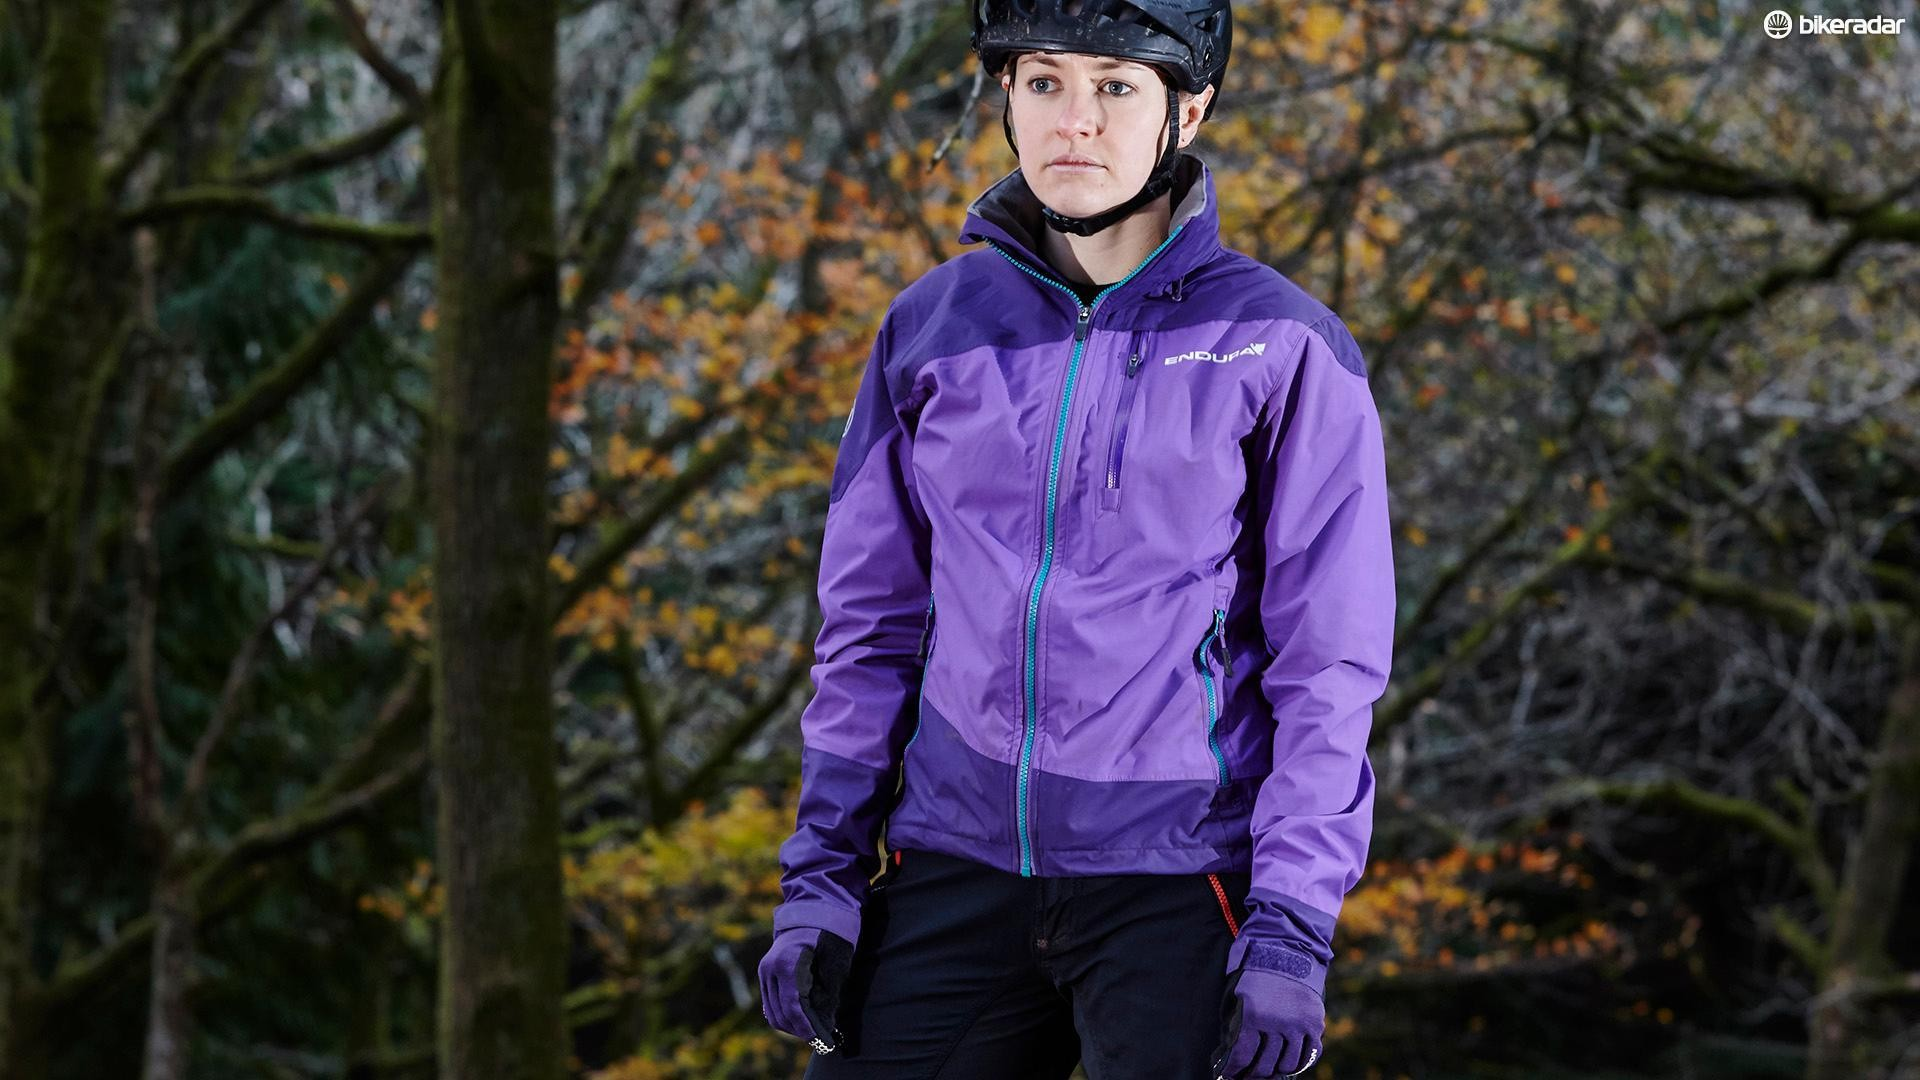 The Endura SingleTrack is a great all-round waterproof